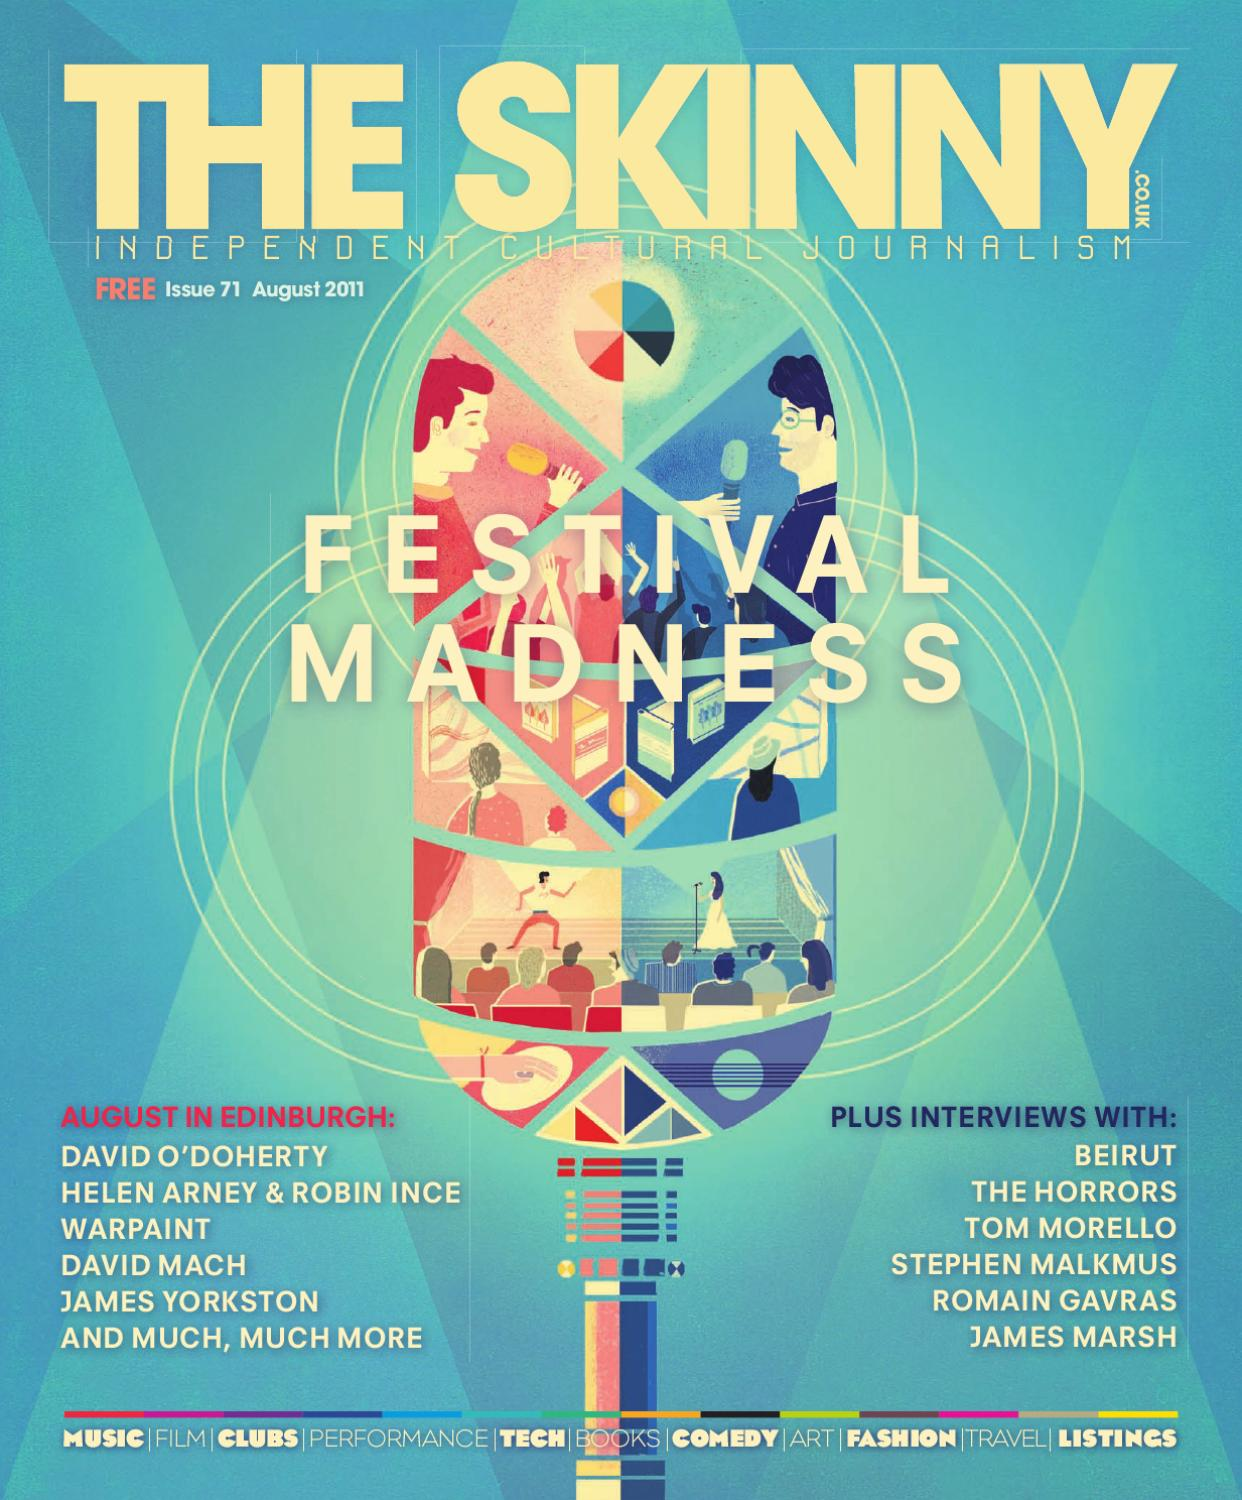 The Skinny August 2011 by The Skinny - issuu